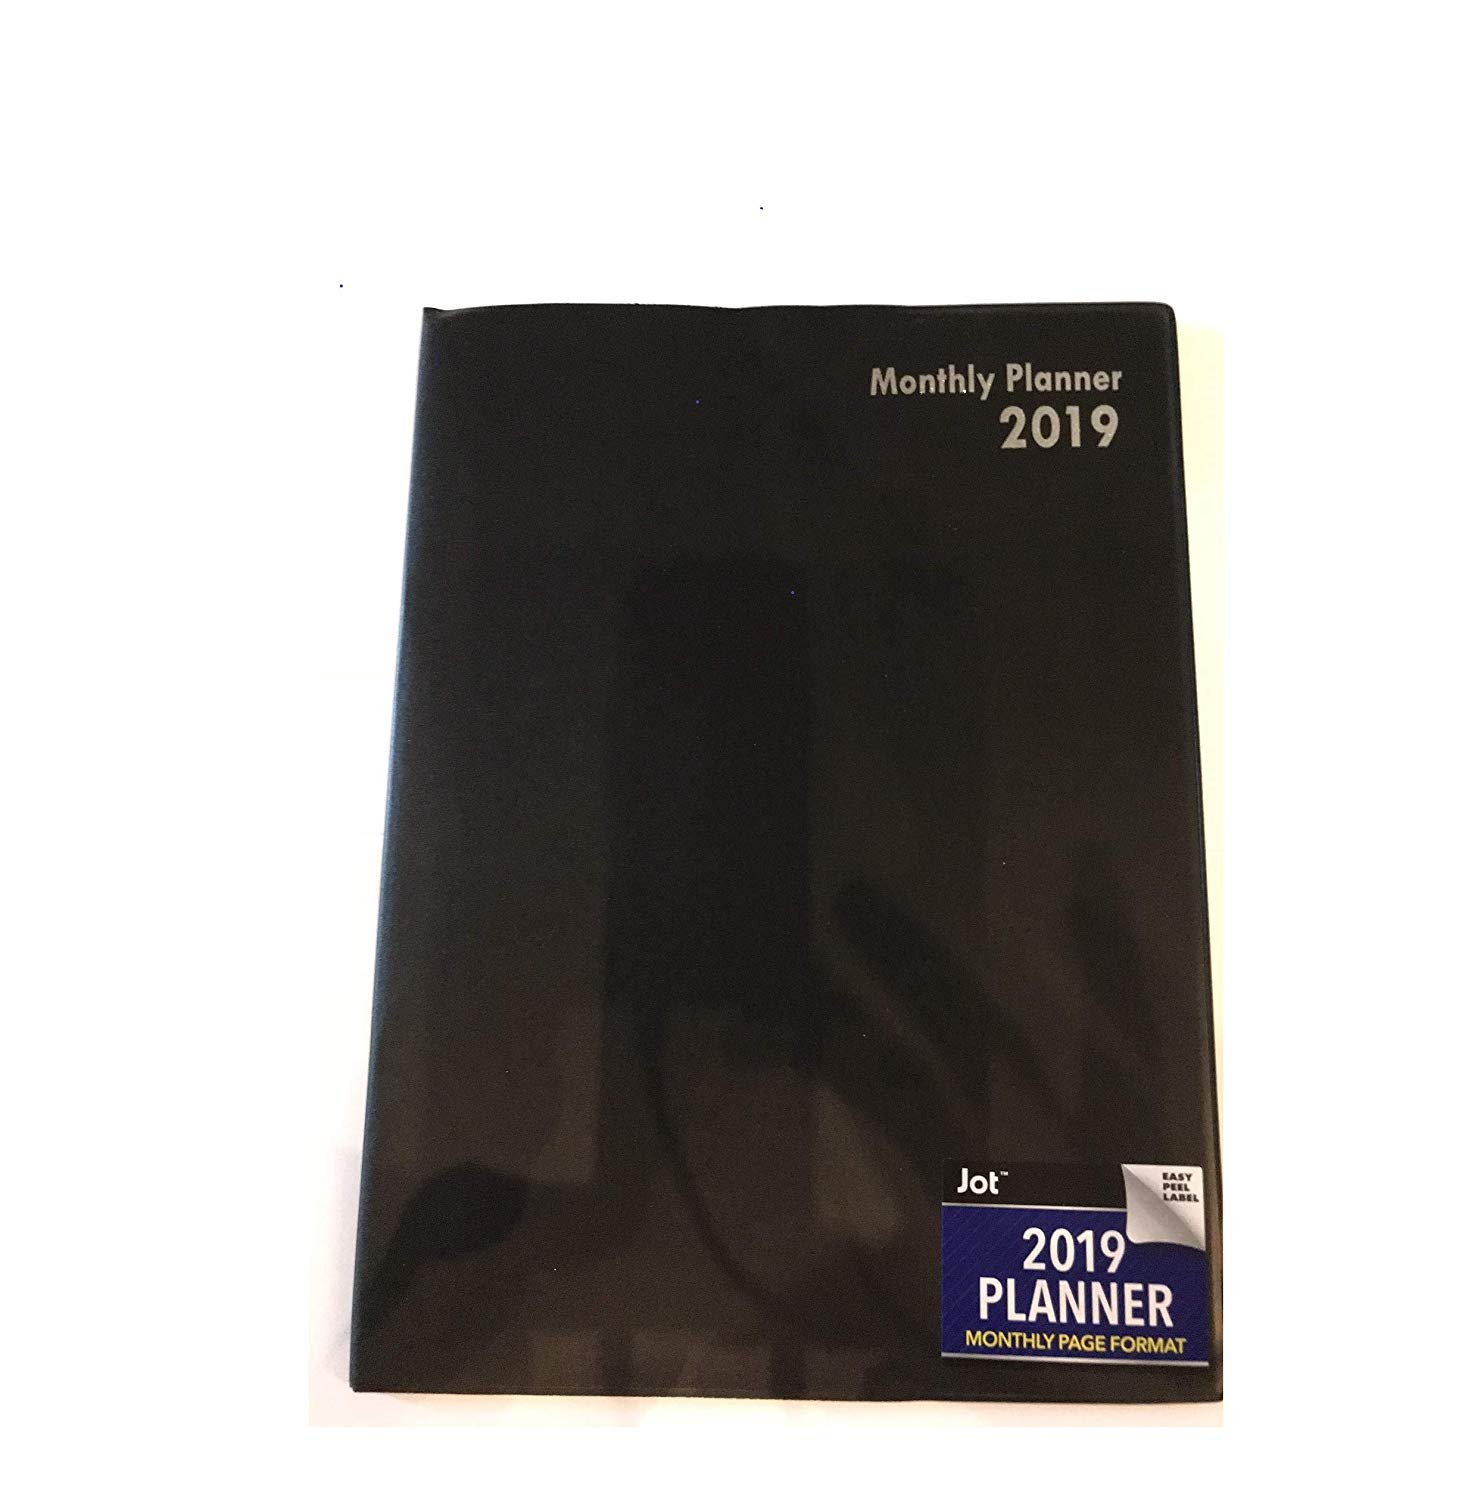 2019 Planner, Monthly Page Format (Black)